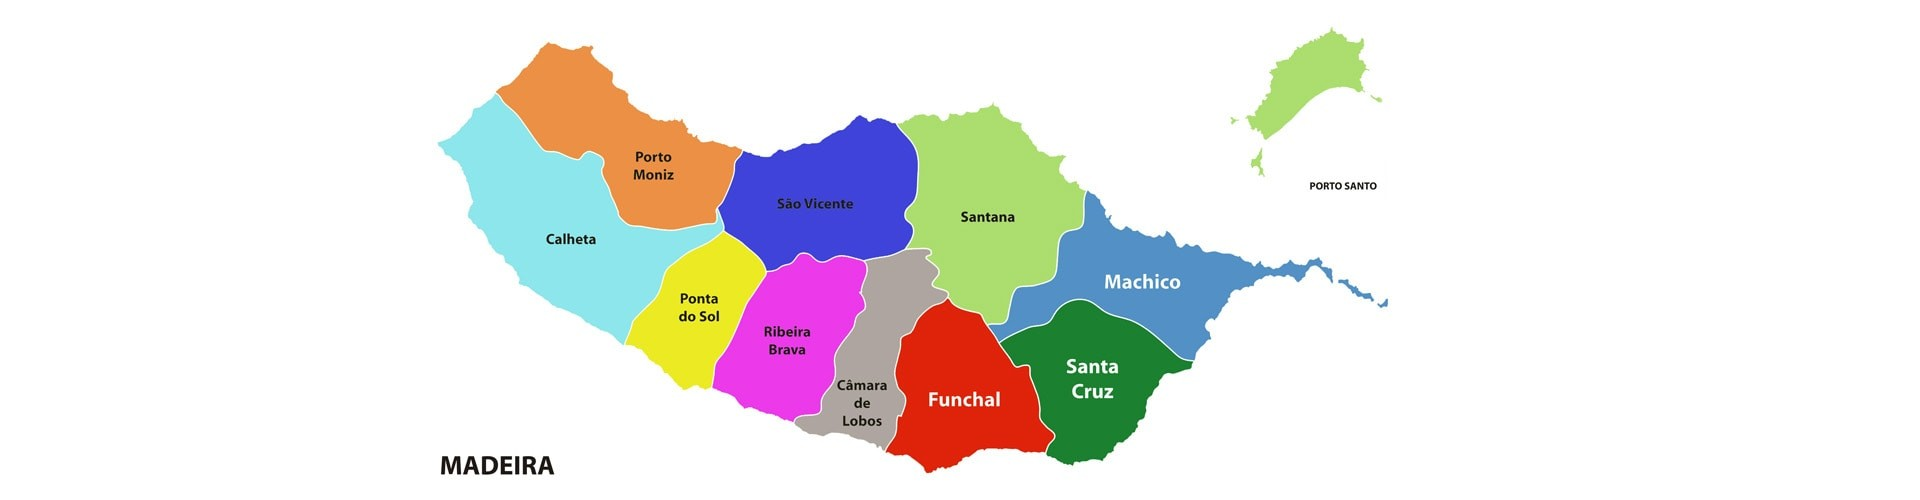 Madeira Island Towns and Municipalities